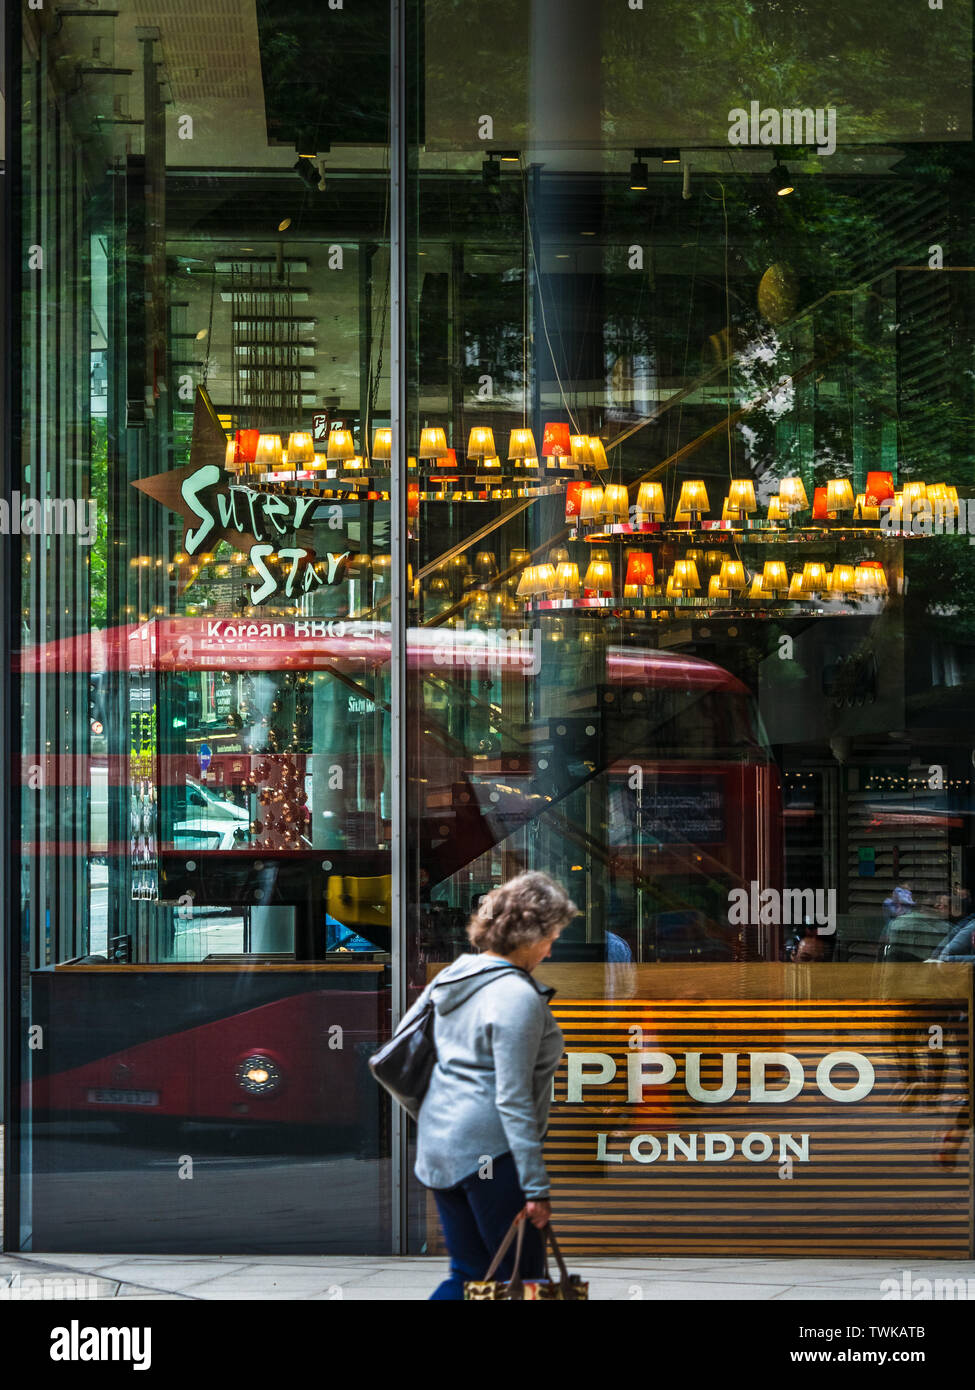 IPPUDO London Ramen Restaurant at Central St GIles in Central London. IPPUDO is a japanese Ramen chain founded in 1985 - Stock Image